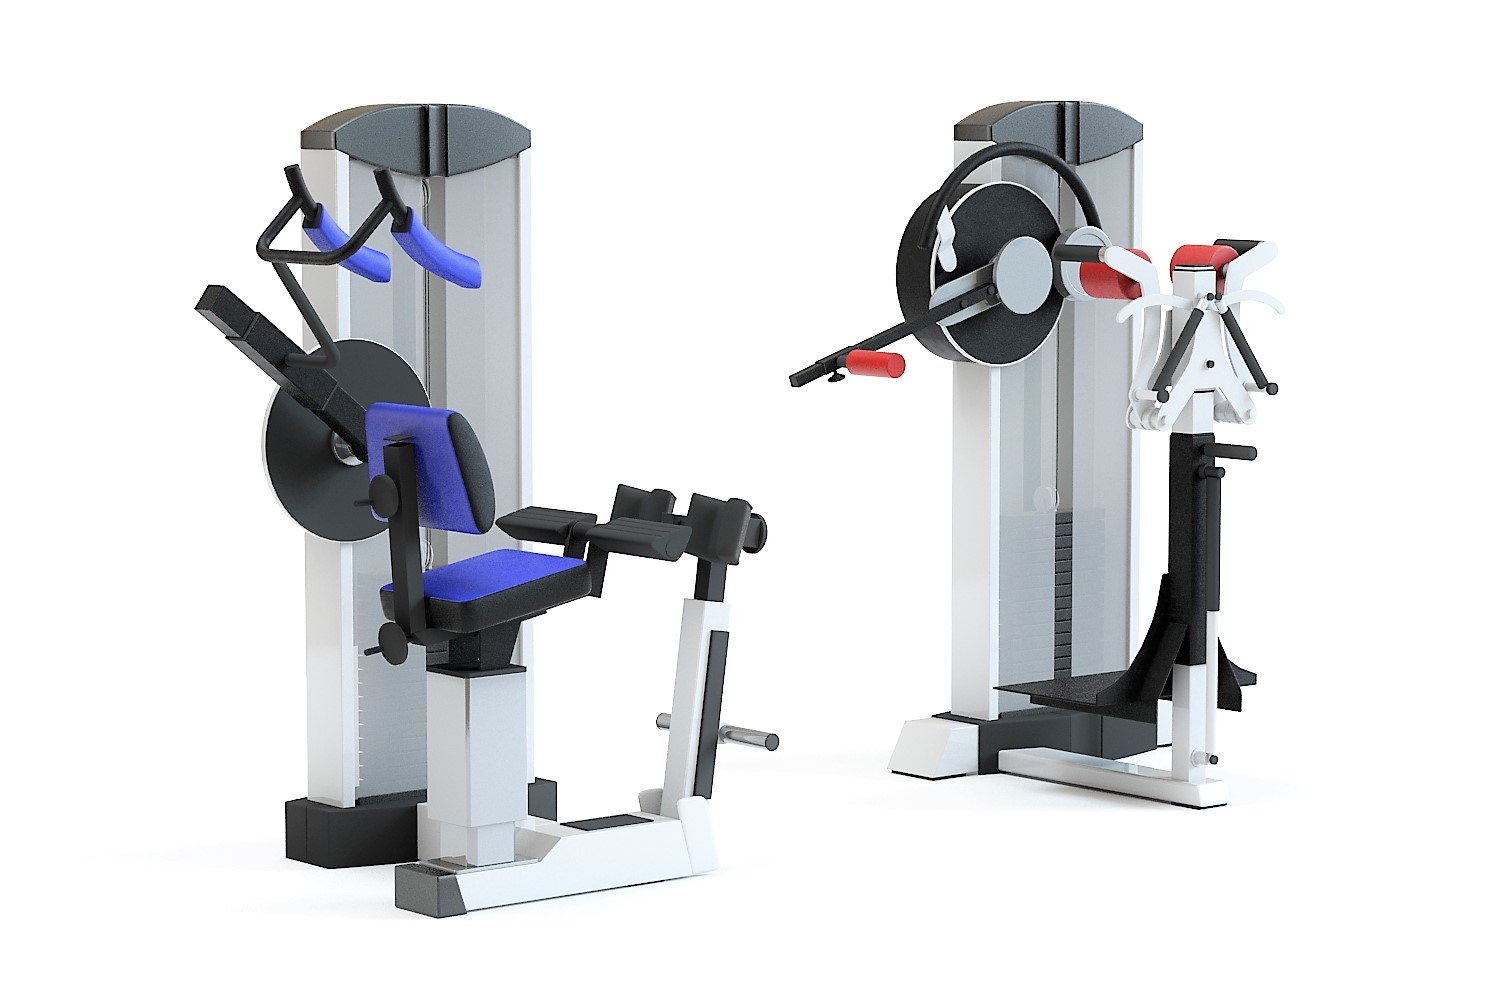 3d modeling service sport equipment